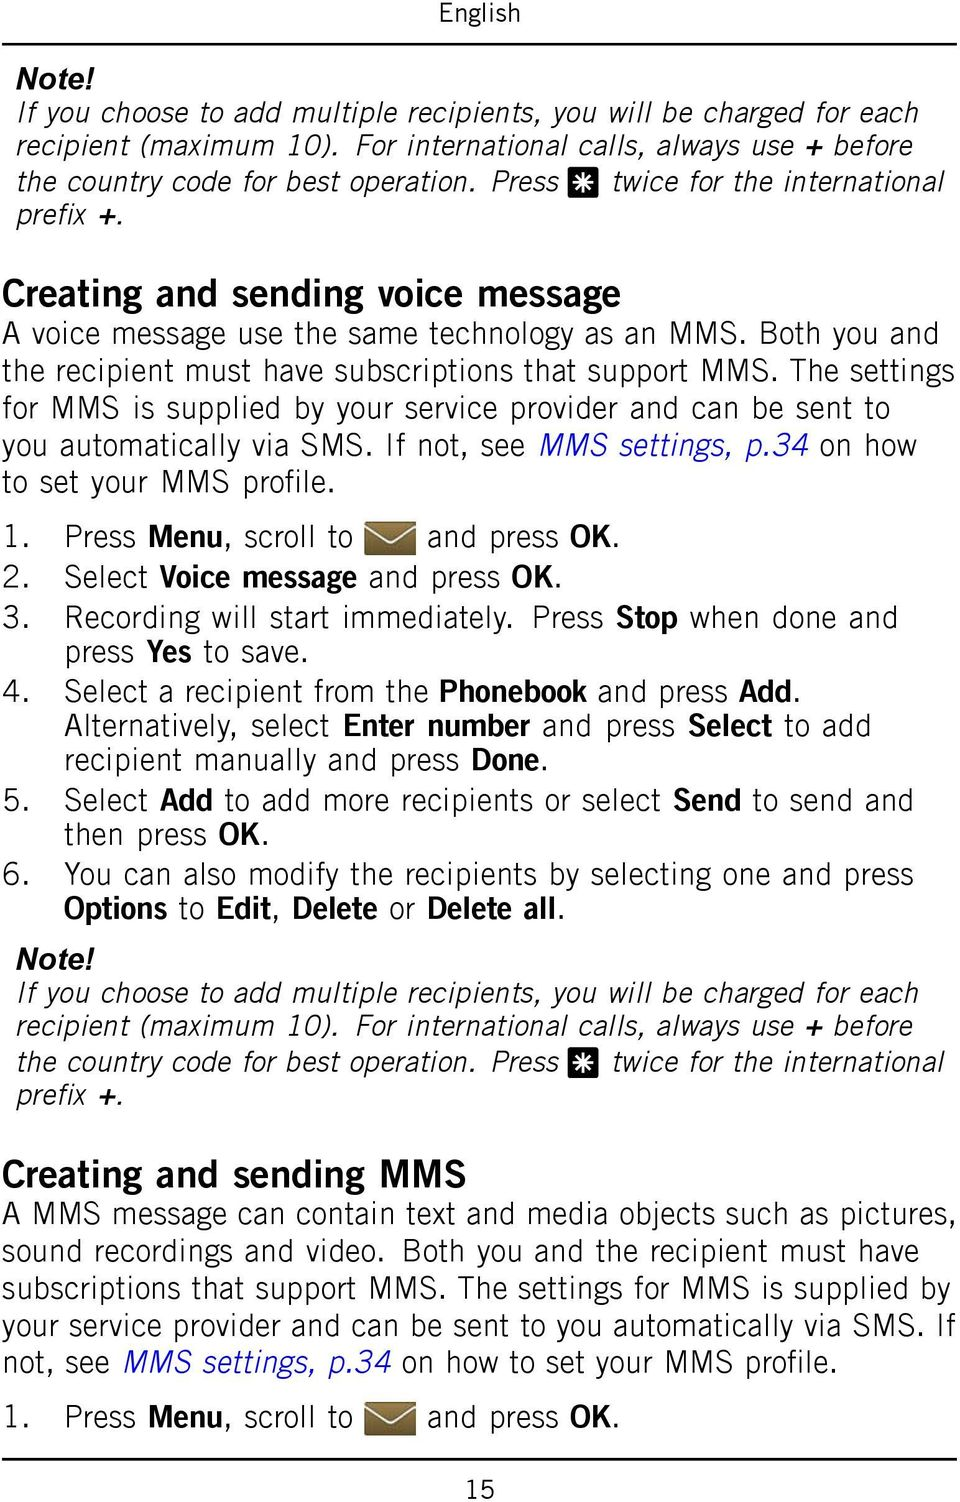 The settings for MMS is supplied by your service provider and can be sent to you automatically via SMS. If not, see MMS settings, p.34 on how to set your MMS profile. 2.